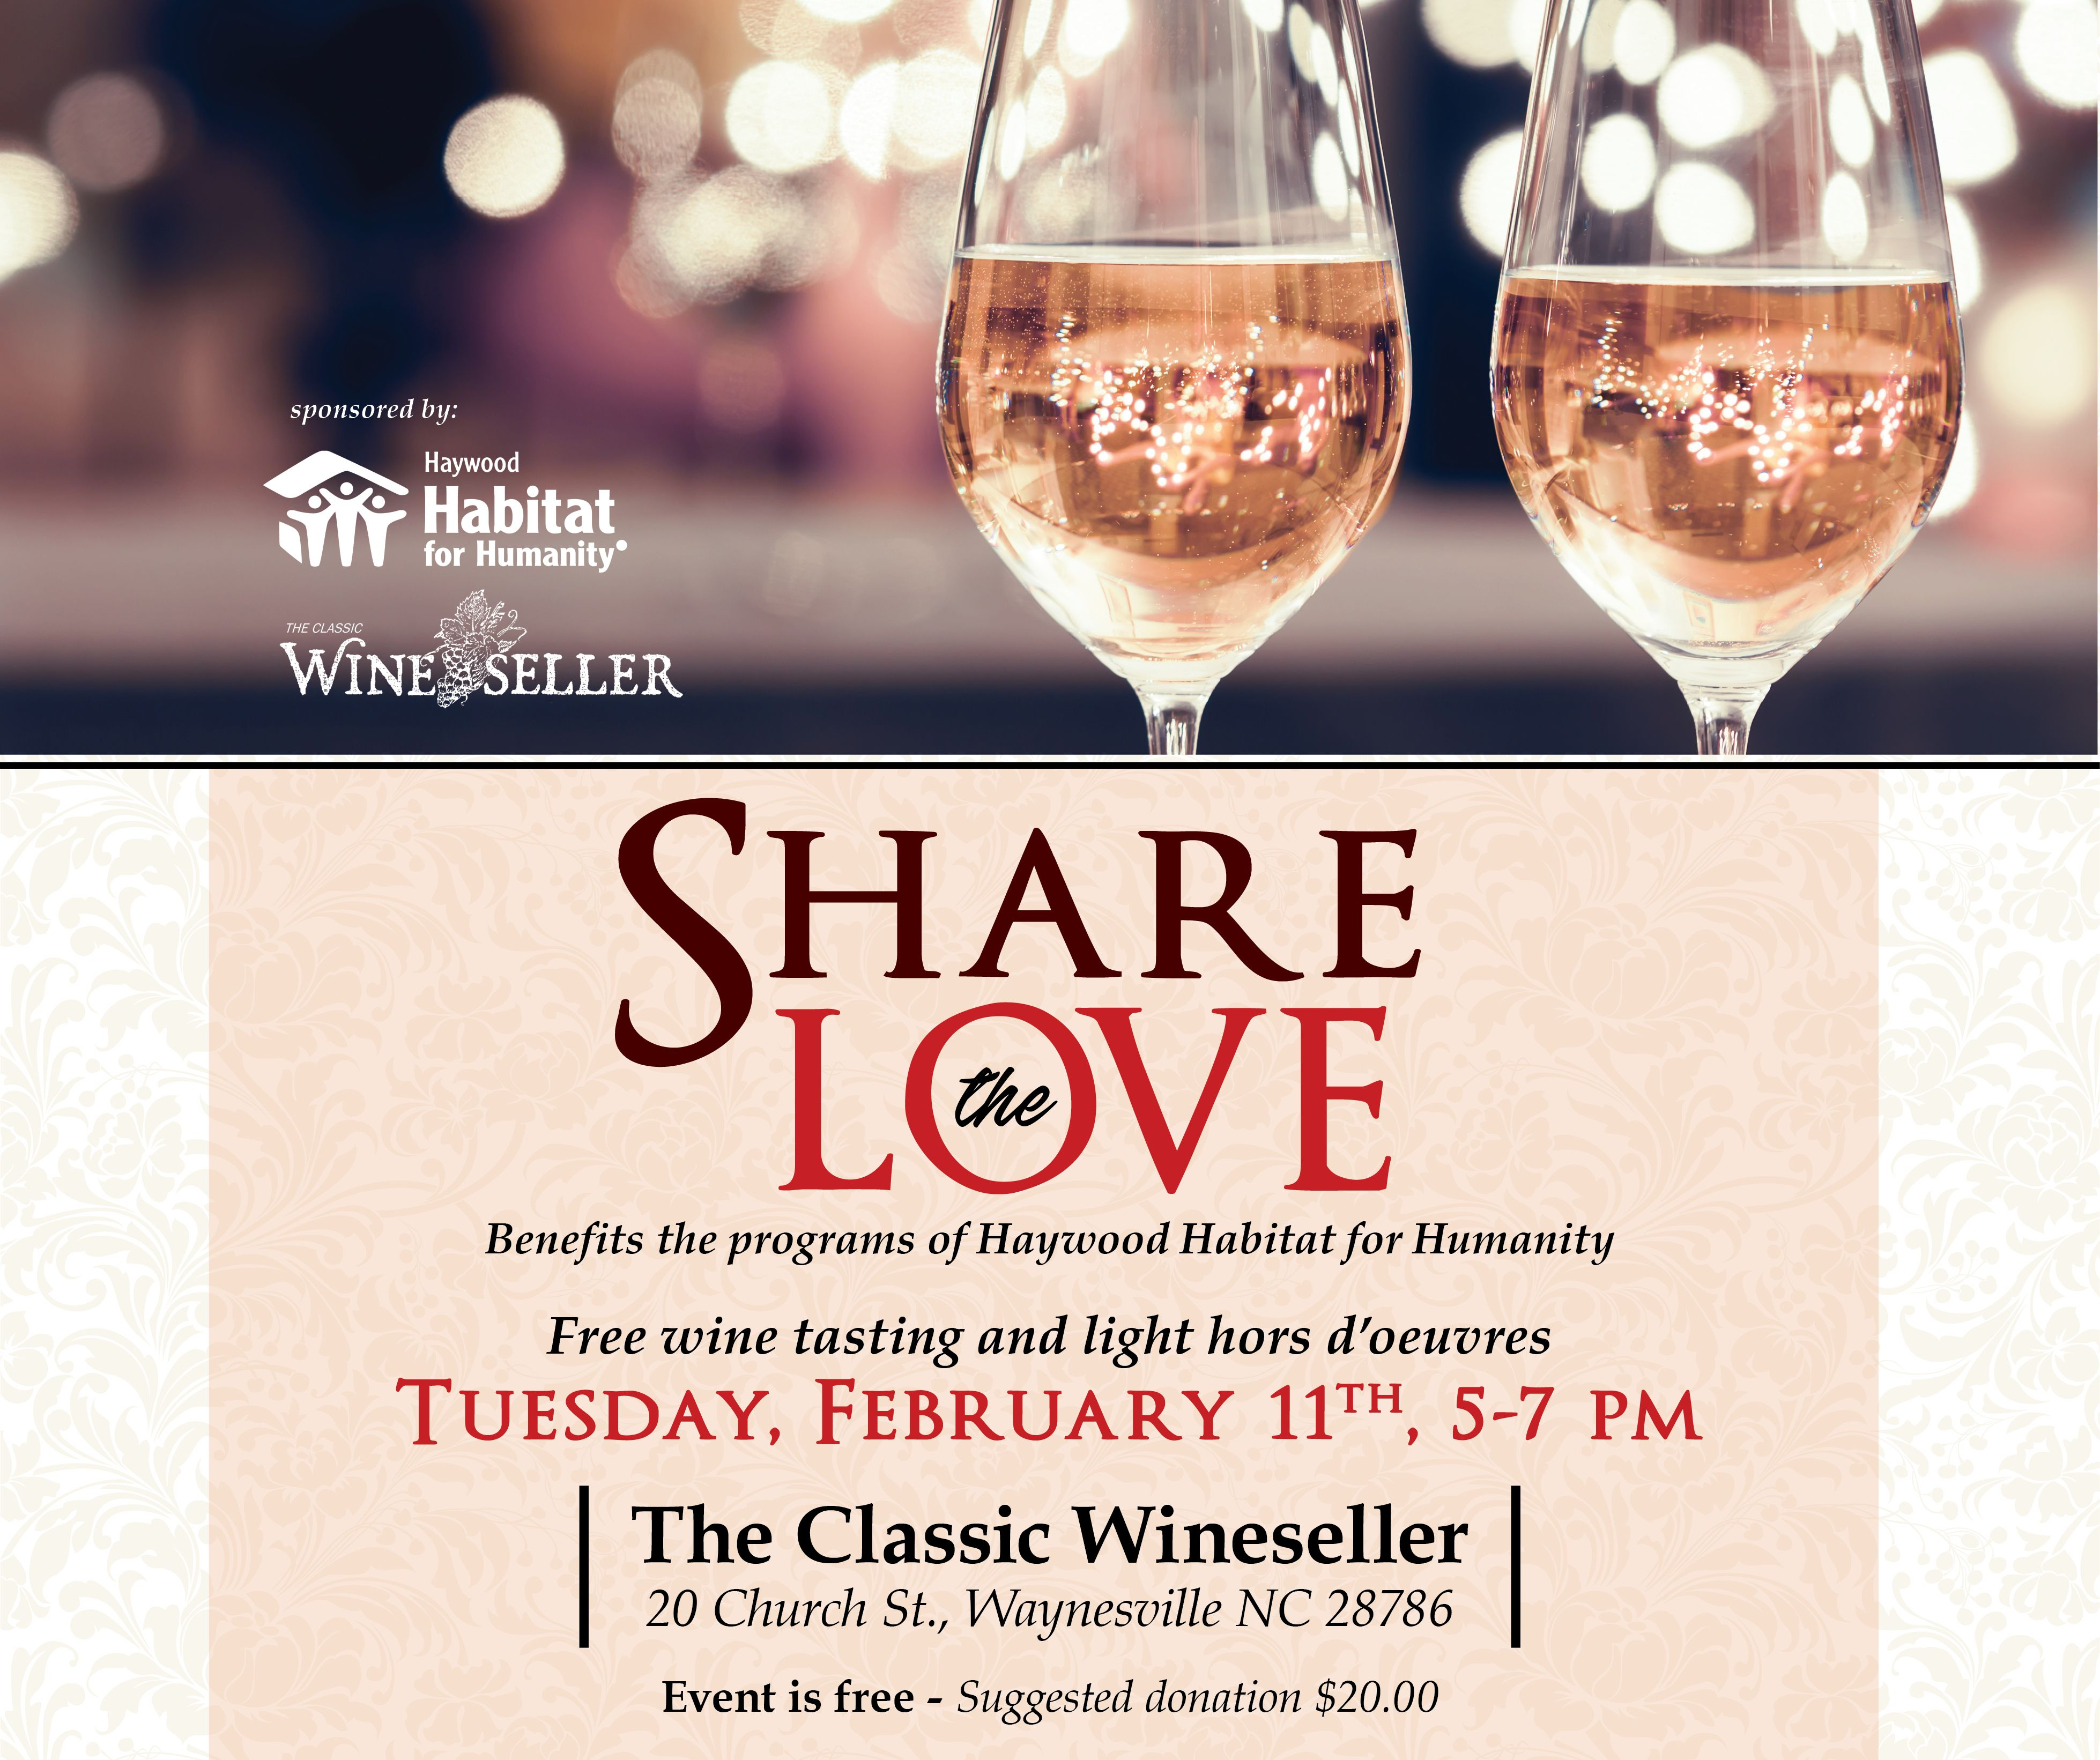 Share the Love Winetasting